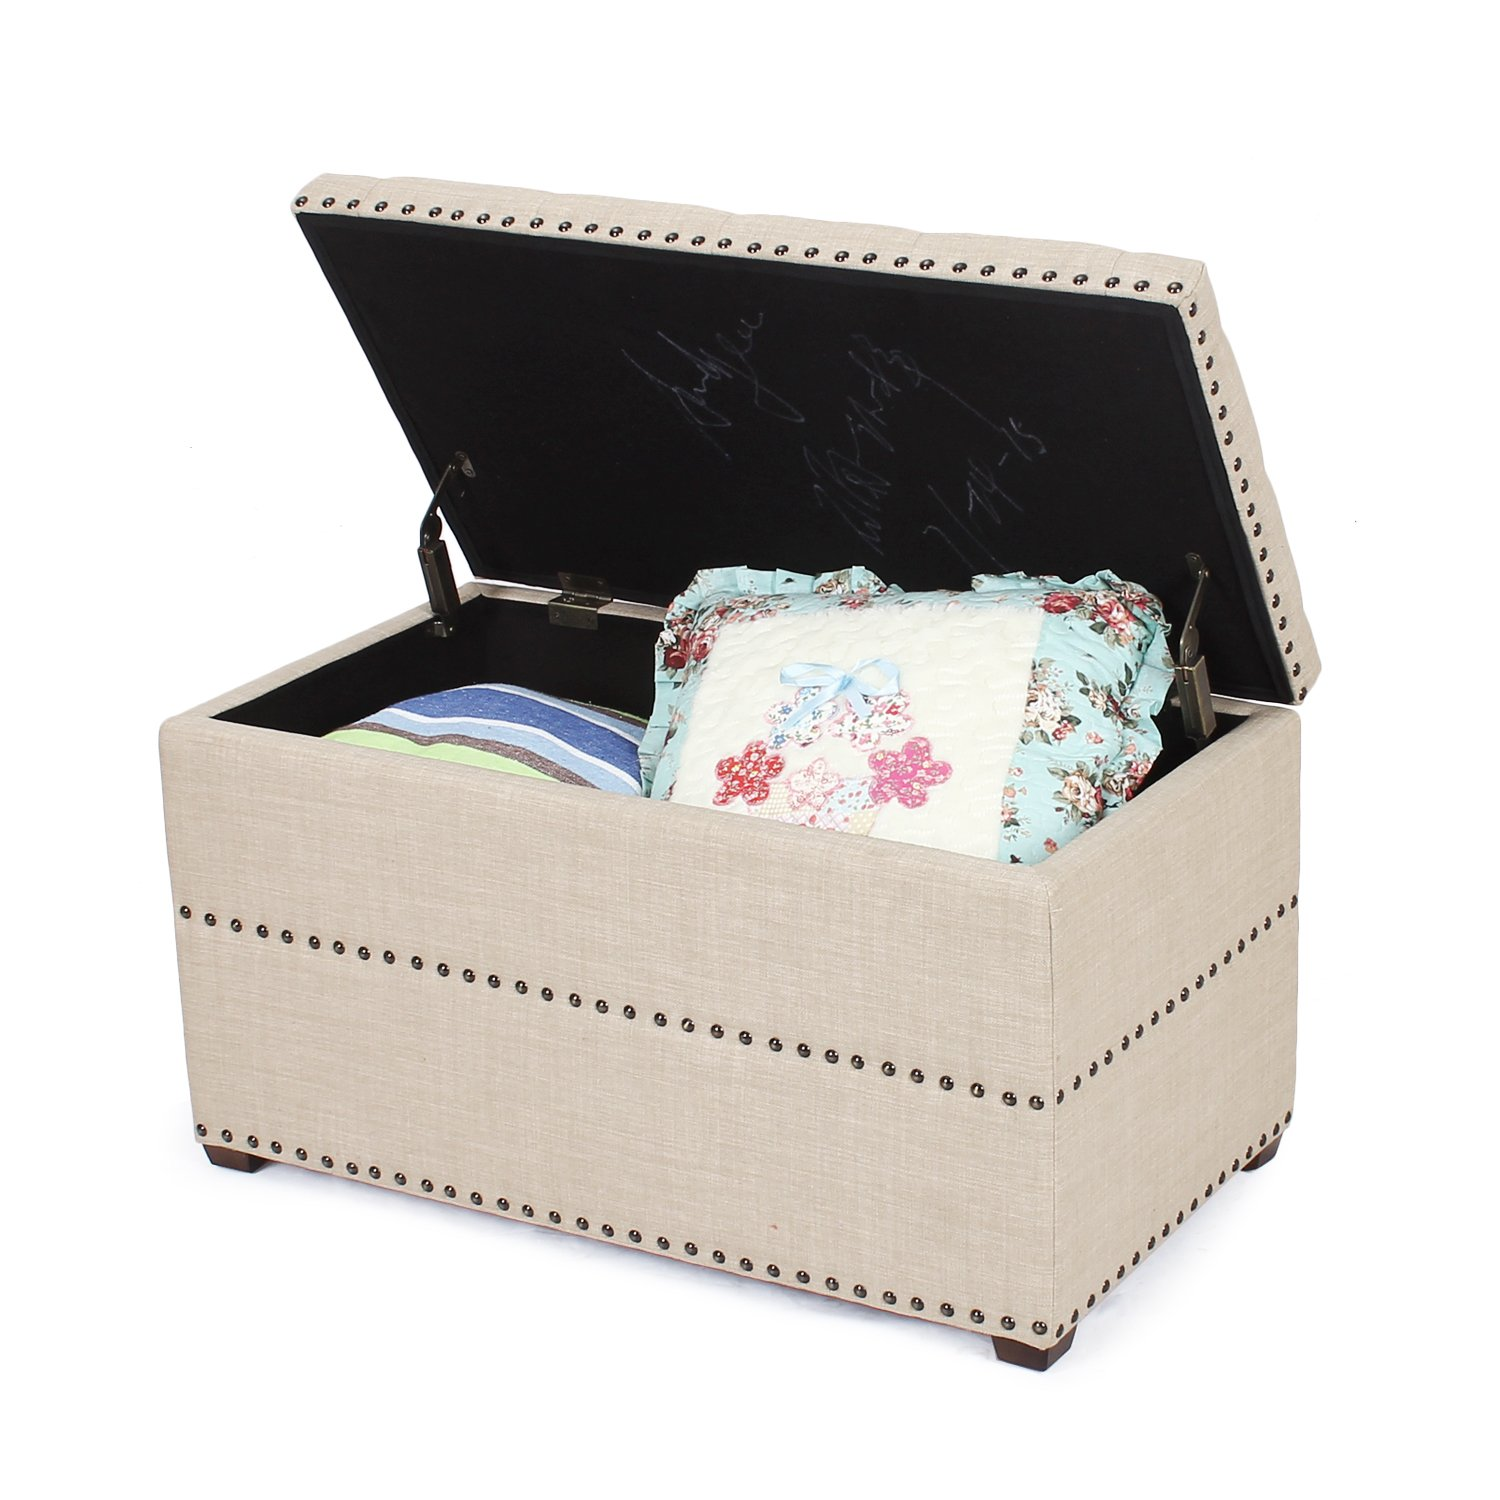 Asense 18 inch Height Fabric Rectangle Tufted Lift Top Storage Ottoman Bench, Footstool with Solid Wood Legs, Nailhead Trim Rectangular, Beige